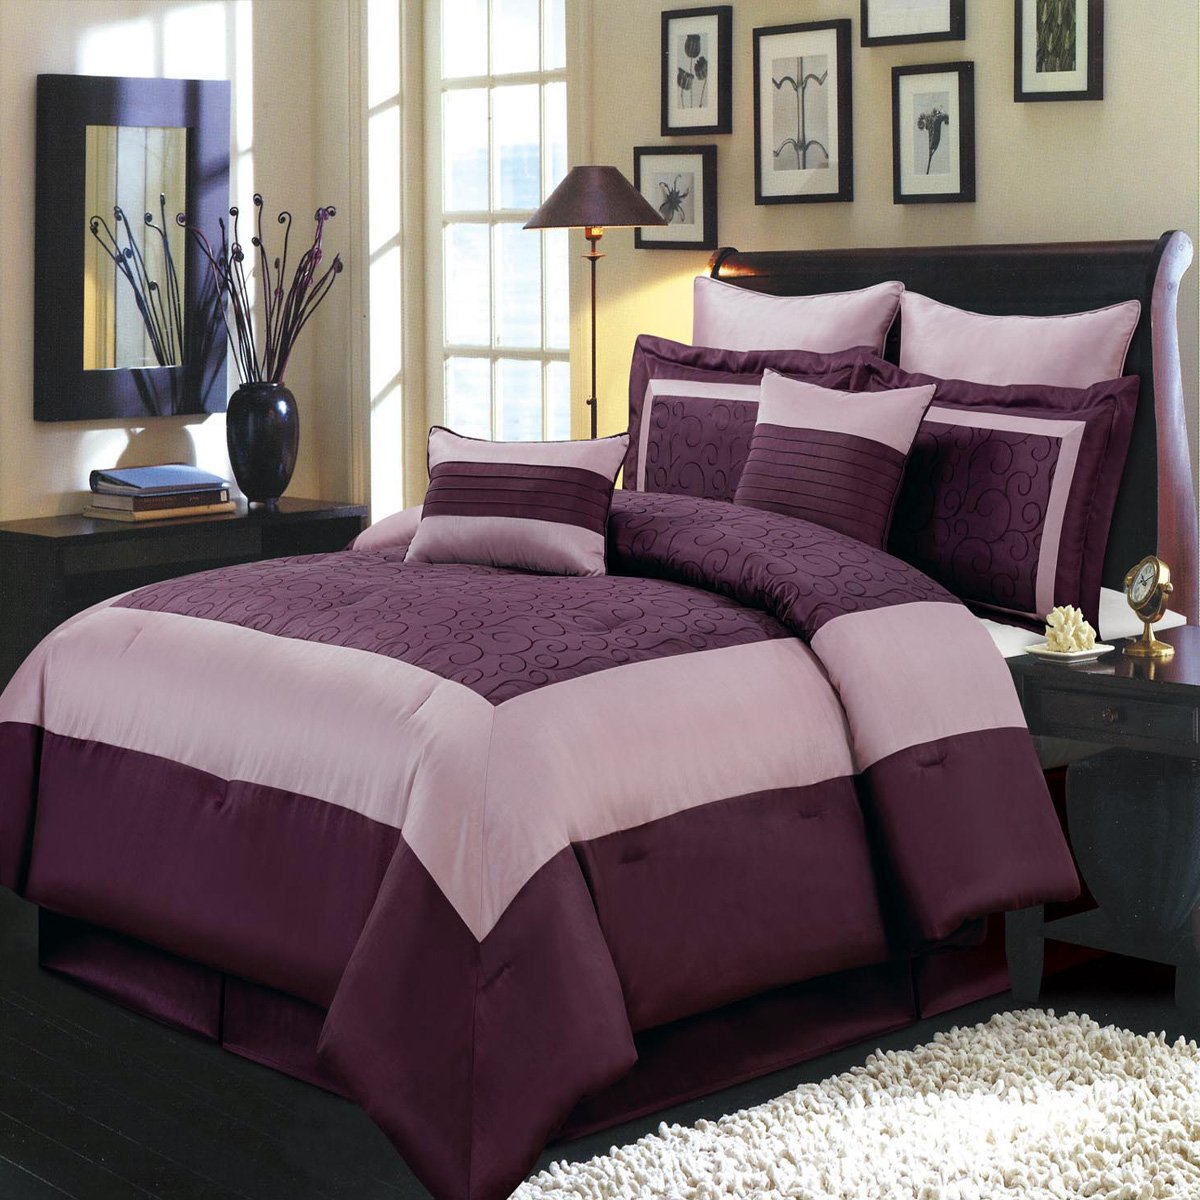 microfiber aetherair paisley queen sheet asli comforter bedding sets co butterfly l purple twin kids